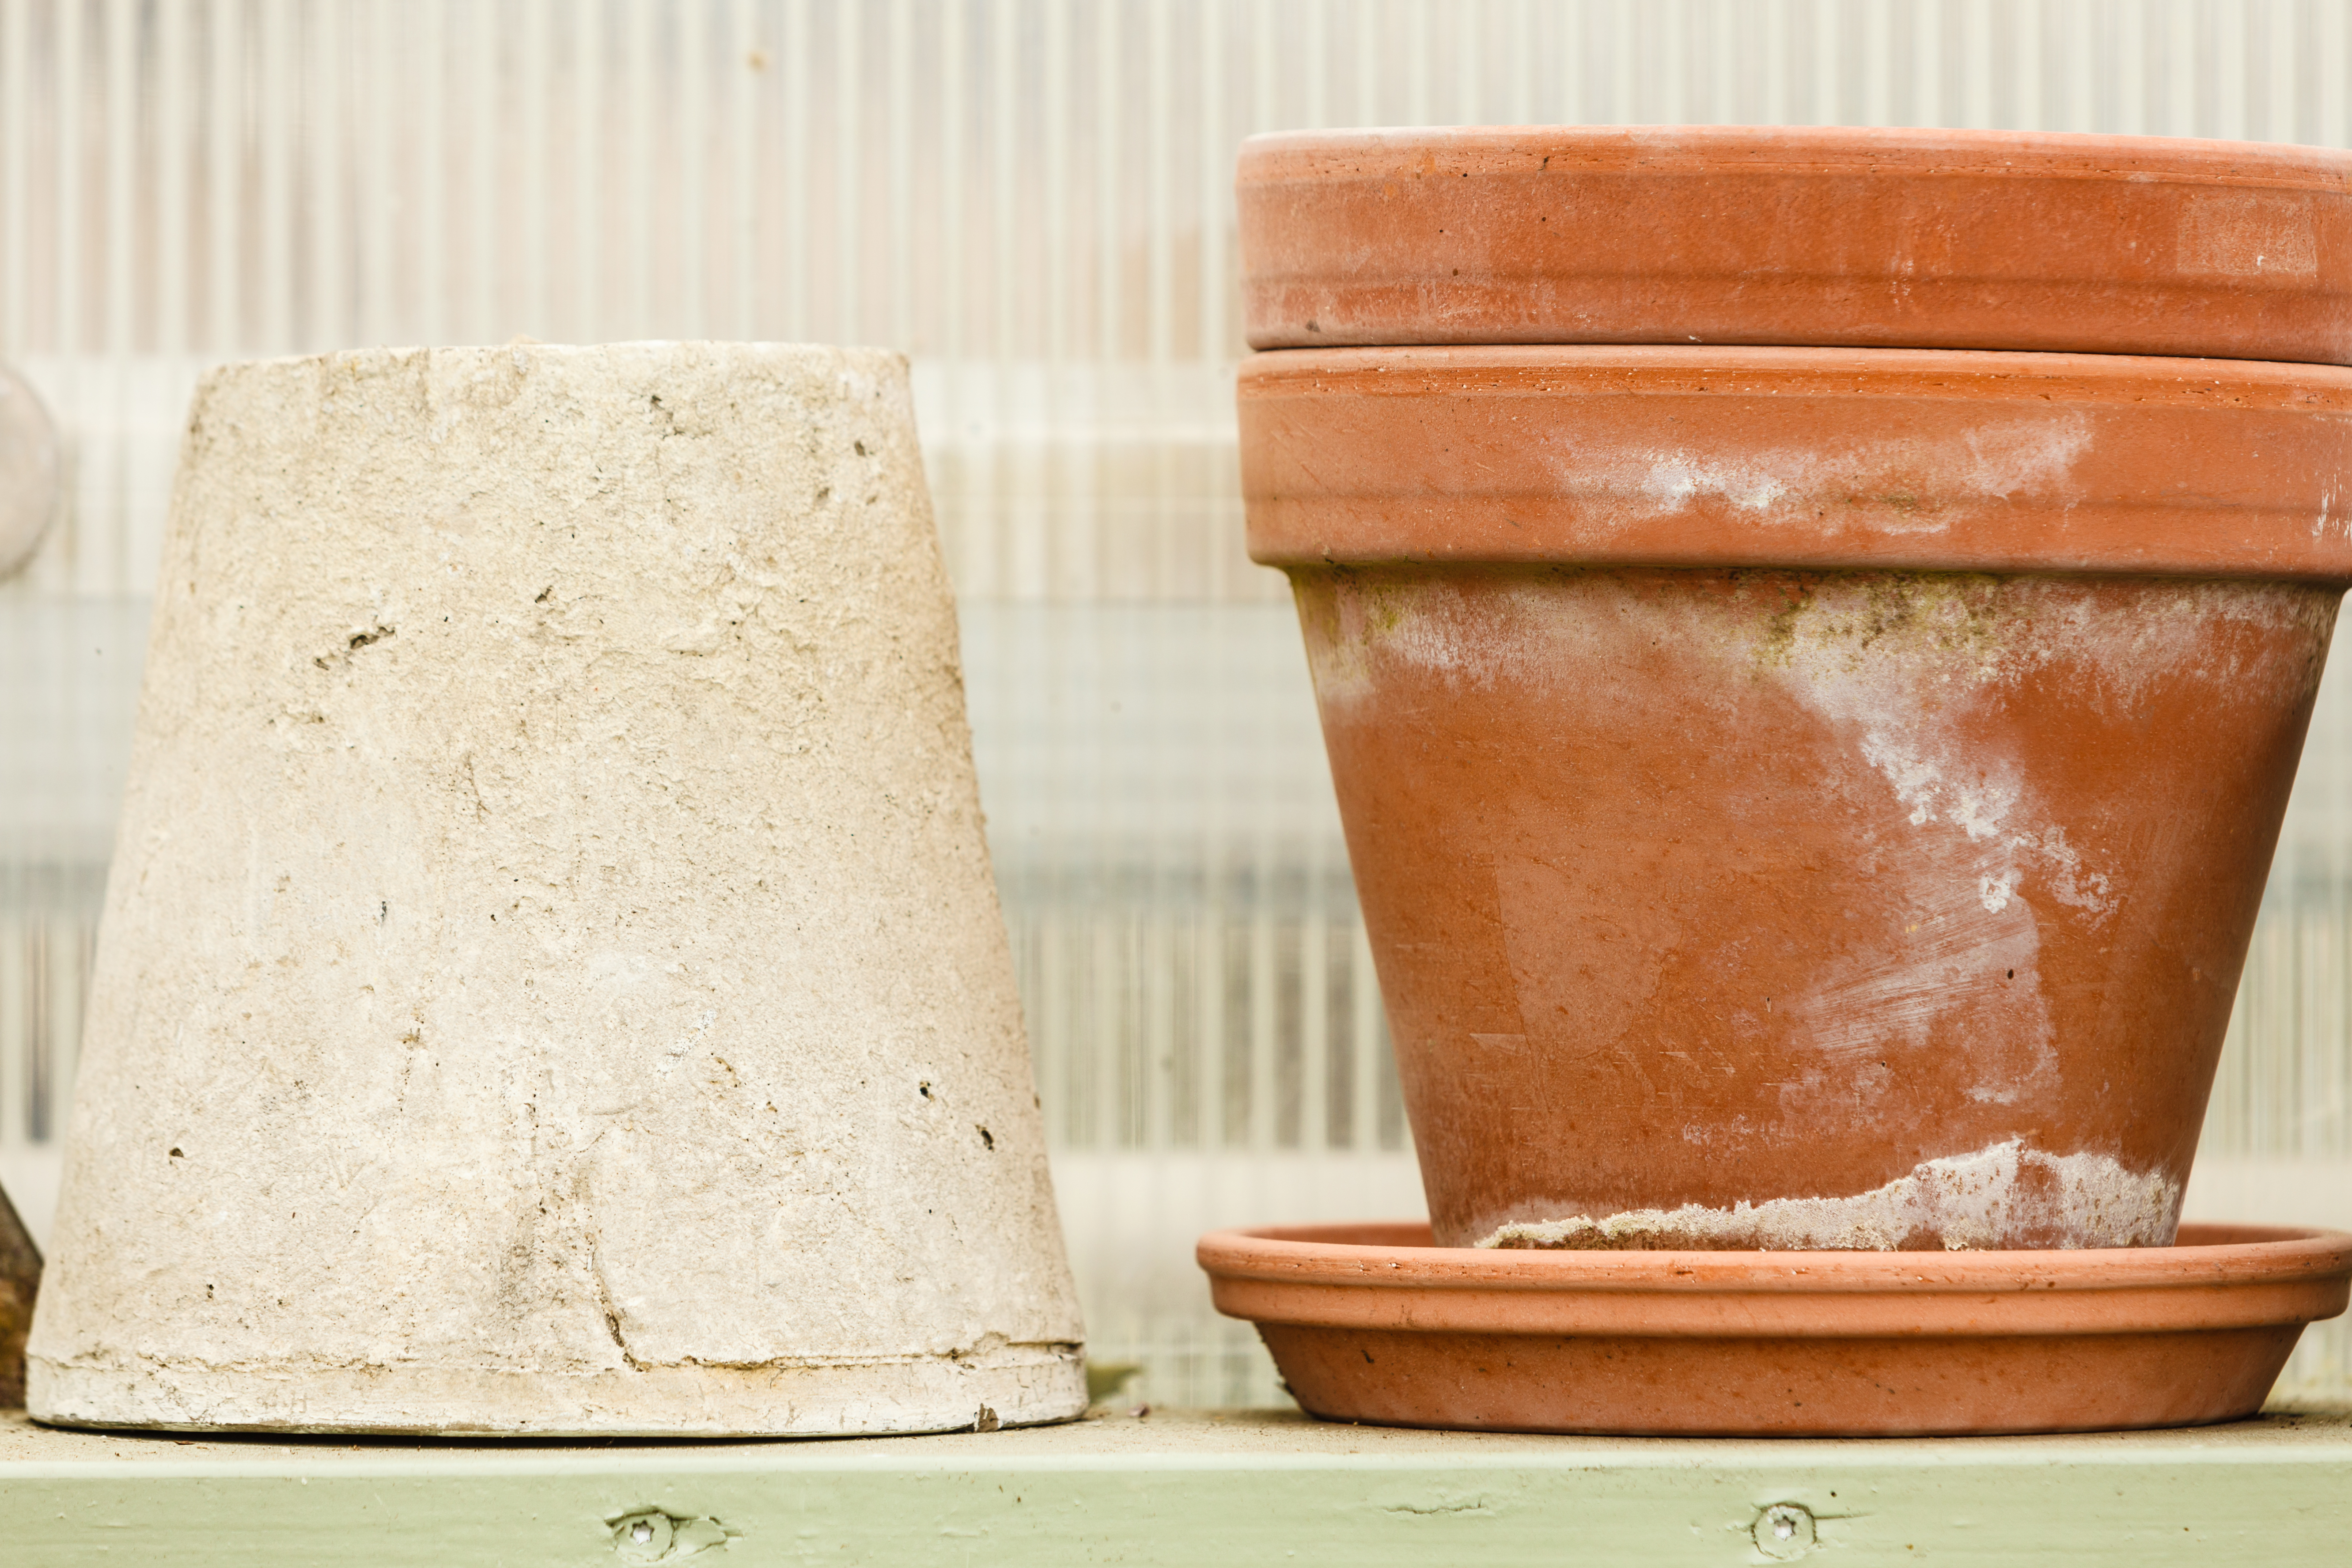 What's the White Stuff on Your Terracotta Pot? Here's the 411